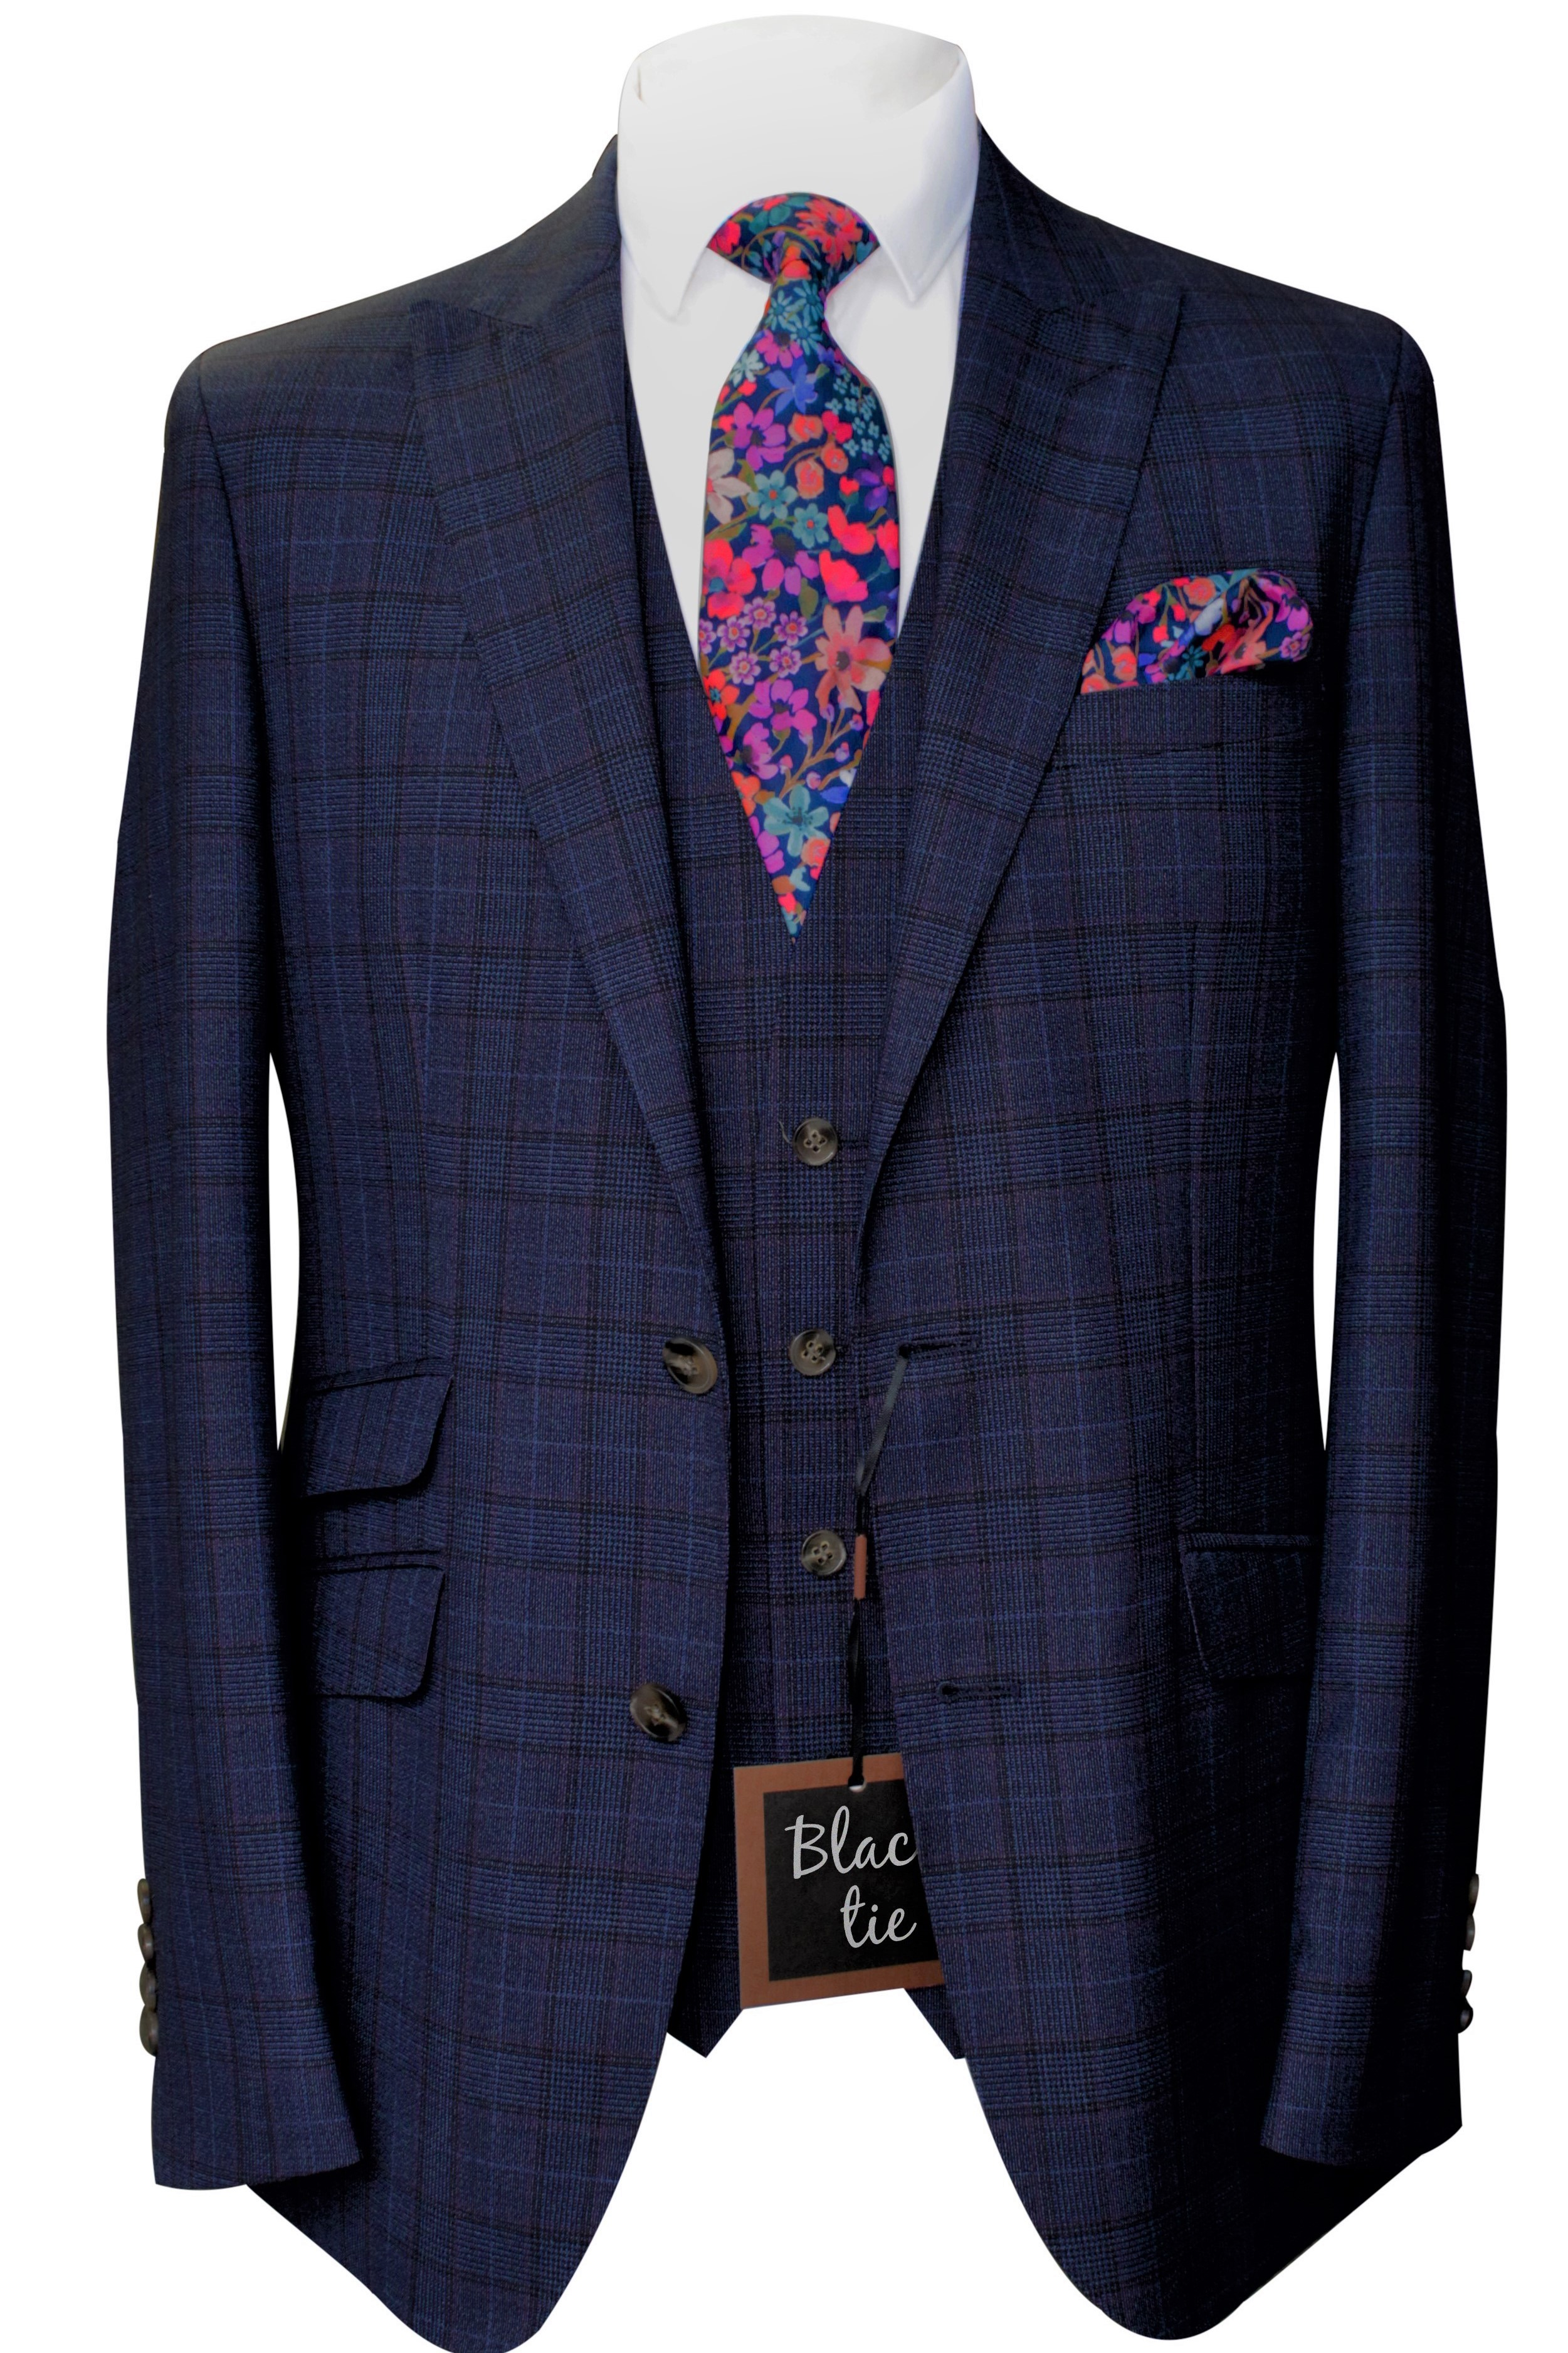 Navy Check Wool Mens Wedding Lounge Suit with floral liberty tie and handkerchief